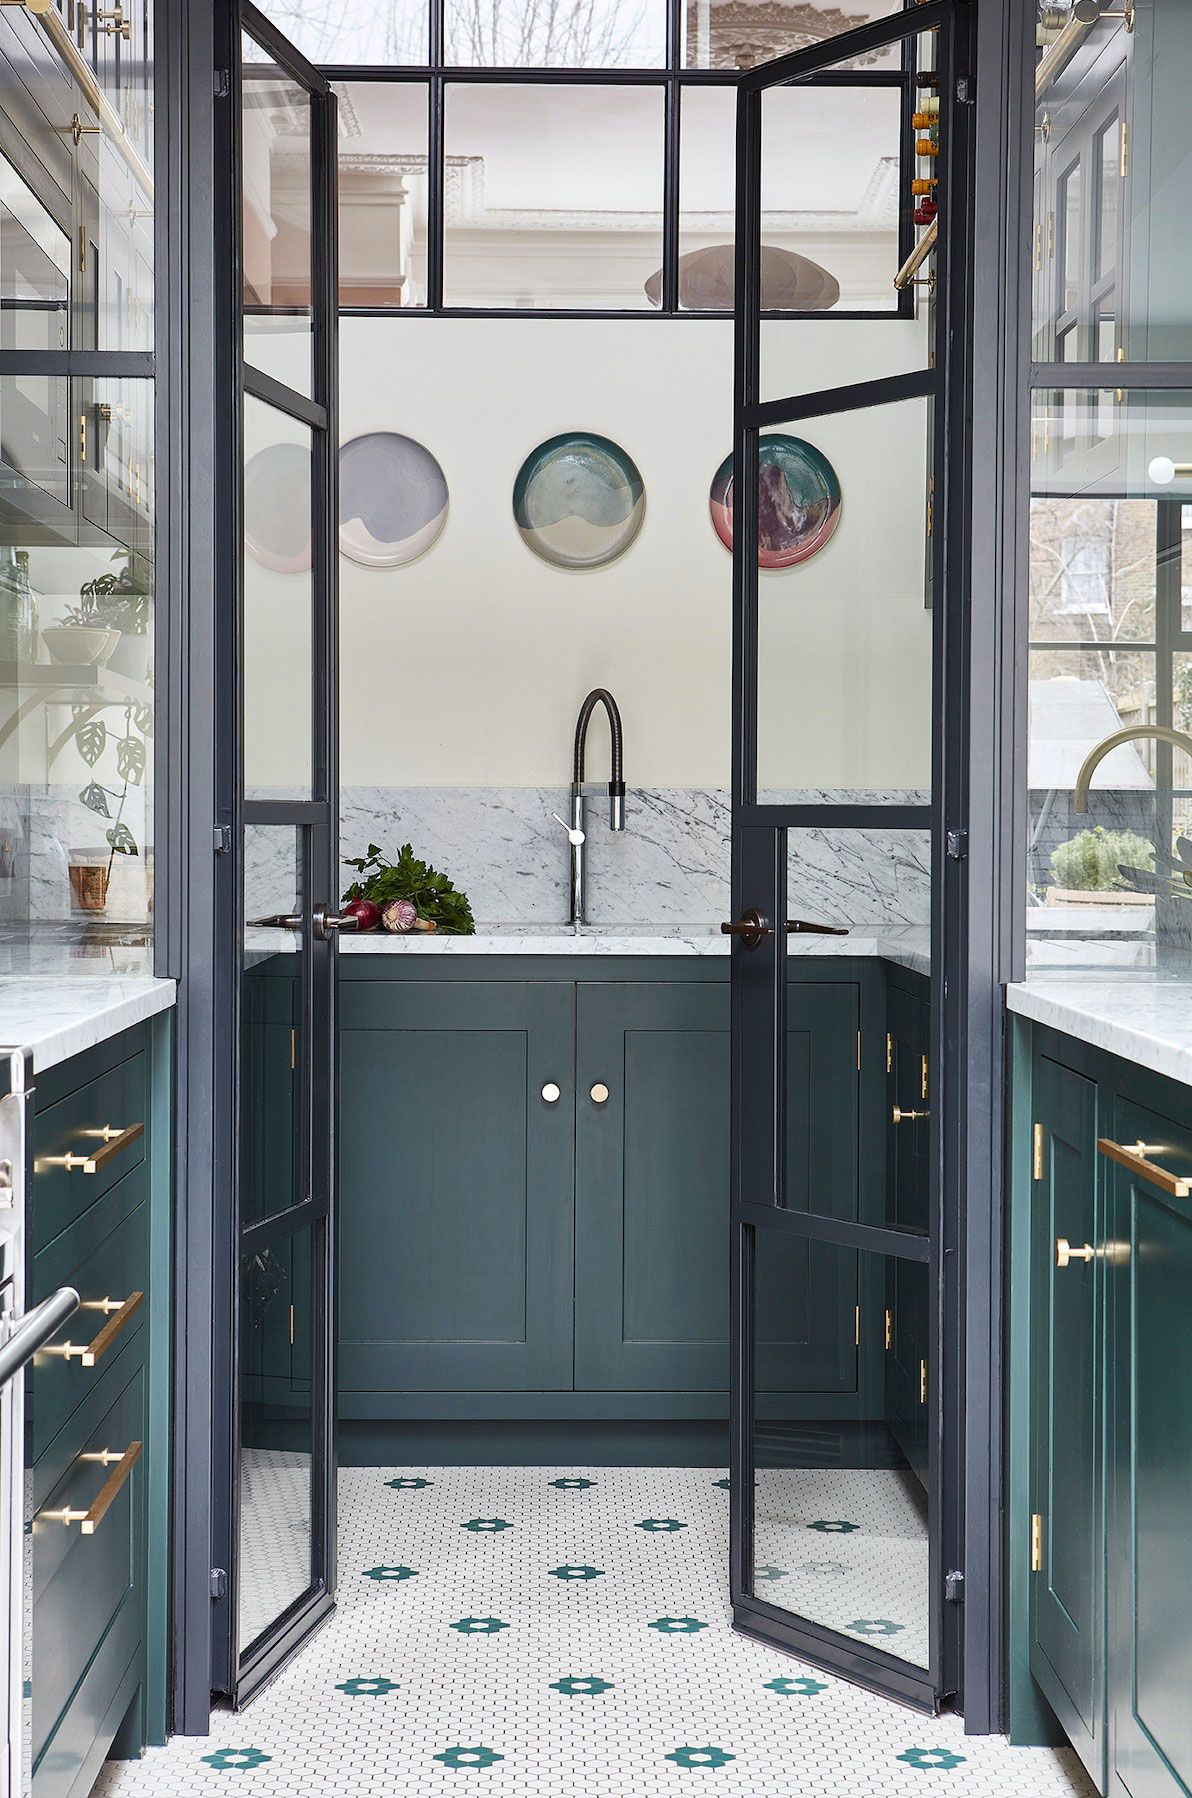 We're drooling over these gorgeous kitchen pantry designs